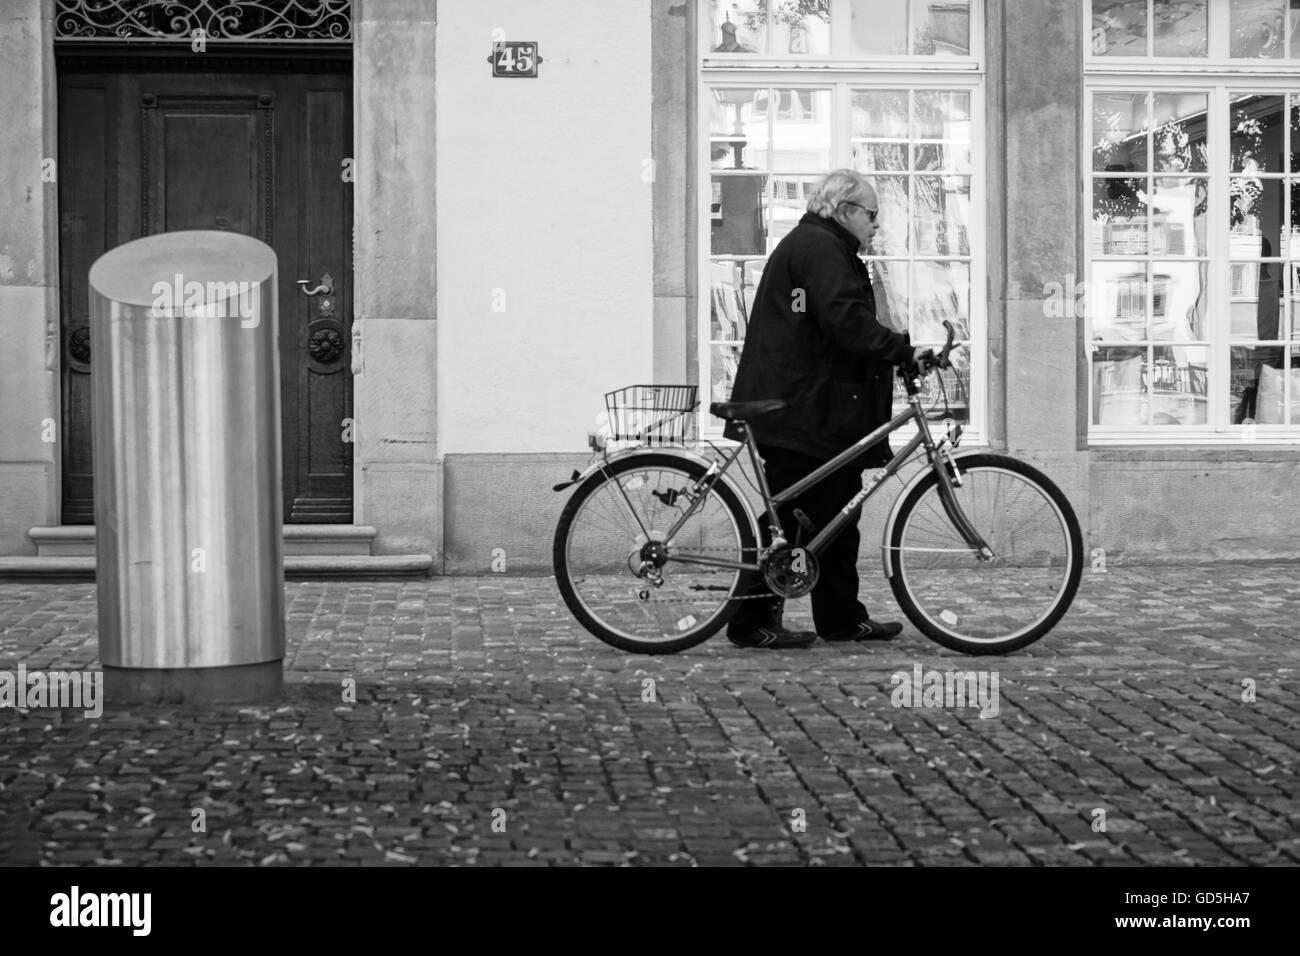 Old man with bicycle in zurich, switzerland, europe - Stock Image